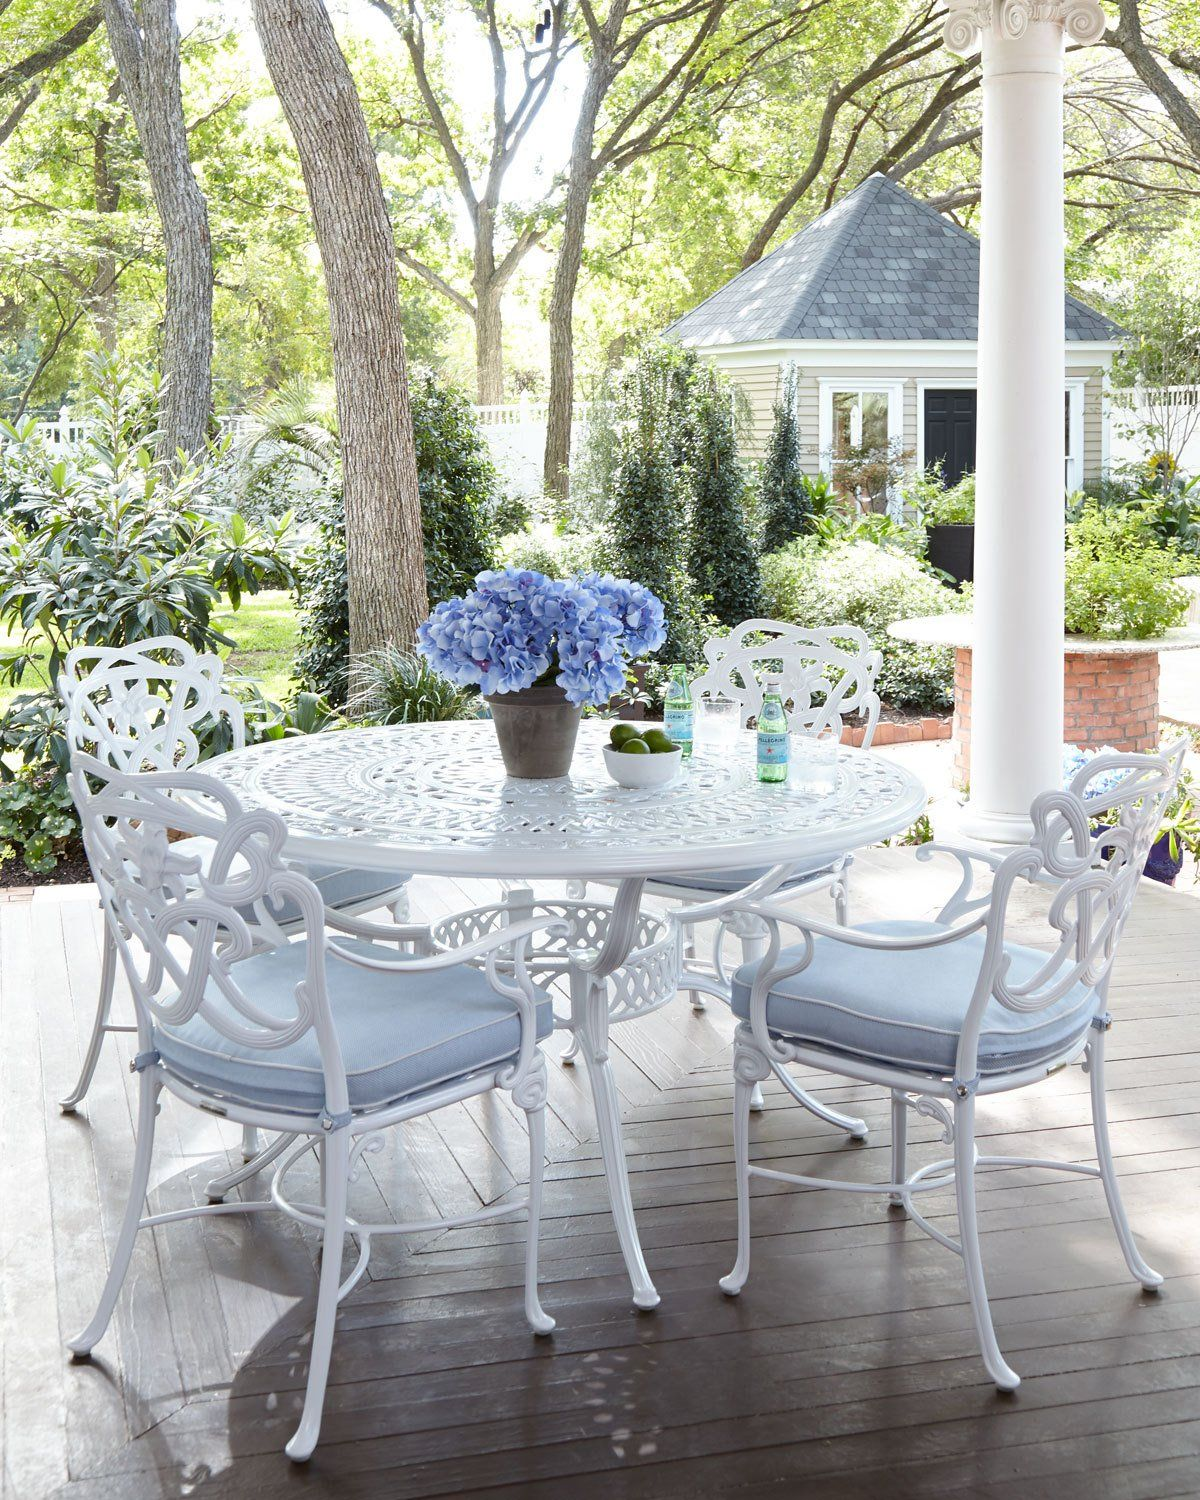 Brown Jordan Day Lily Round Outdoor Dining Table White Patio